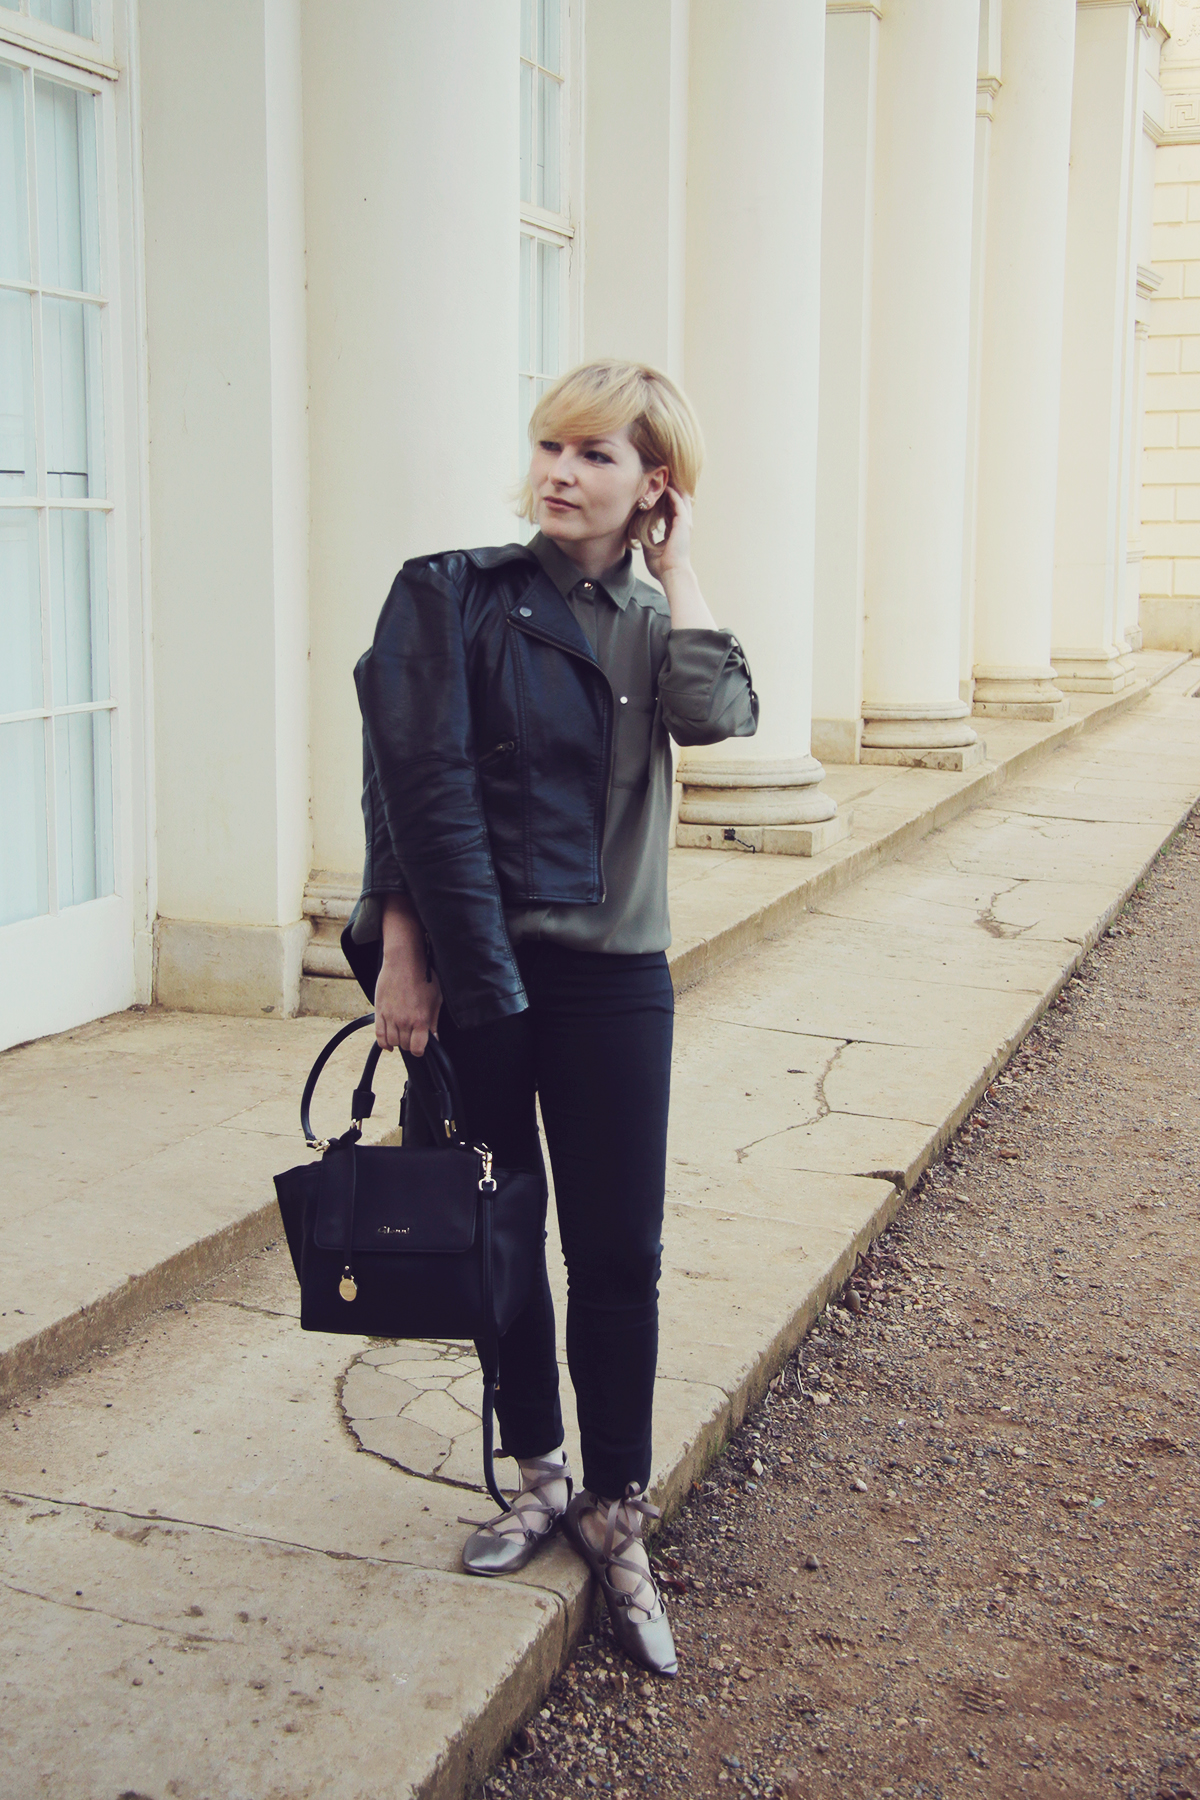 london-ballet-flats-and-faux-leather-jacket